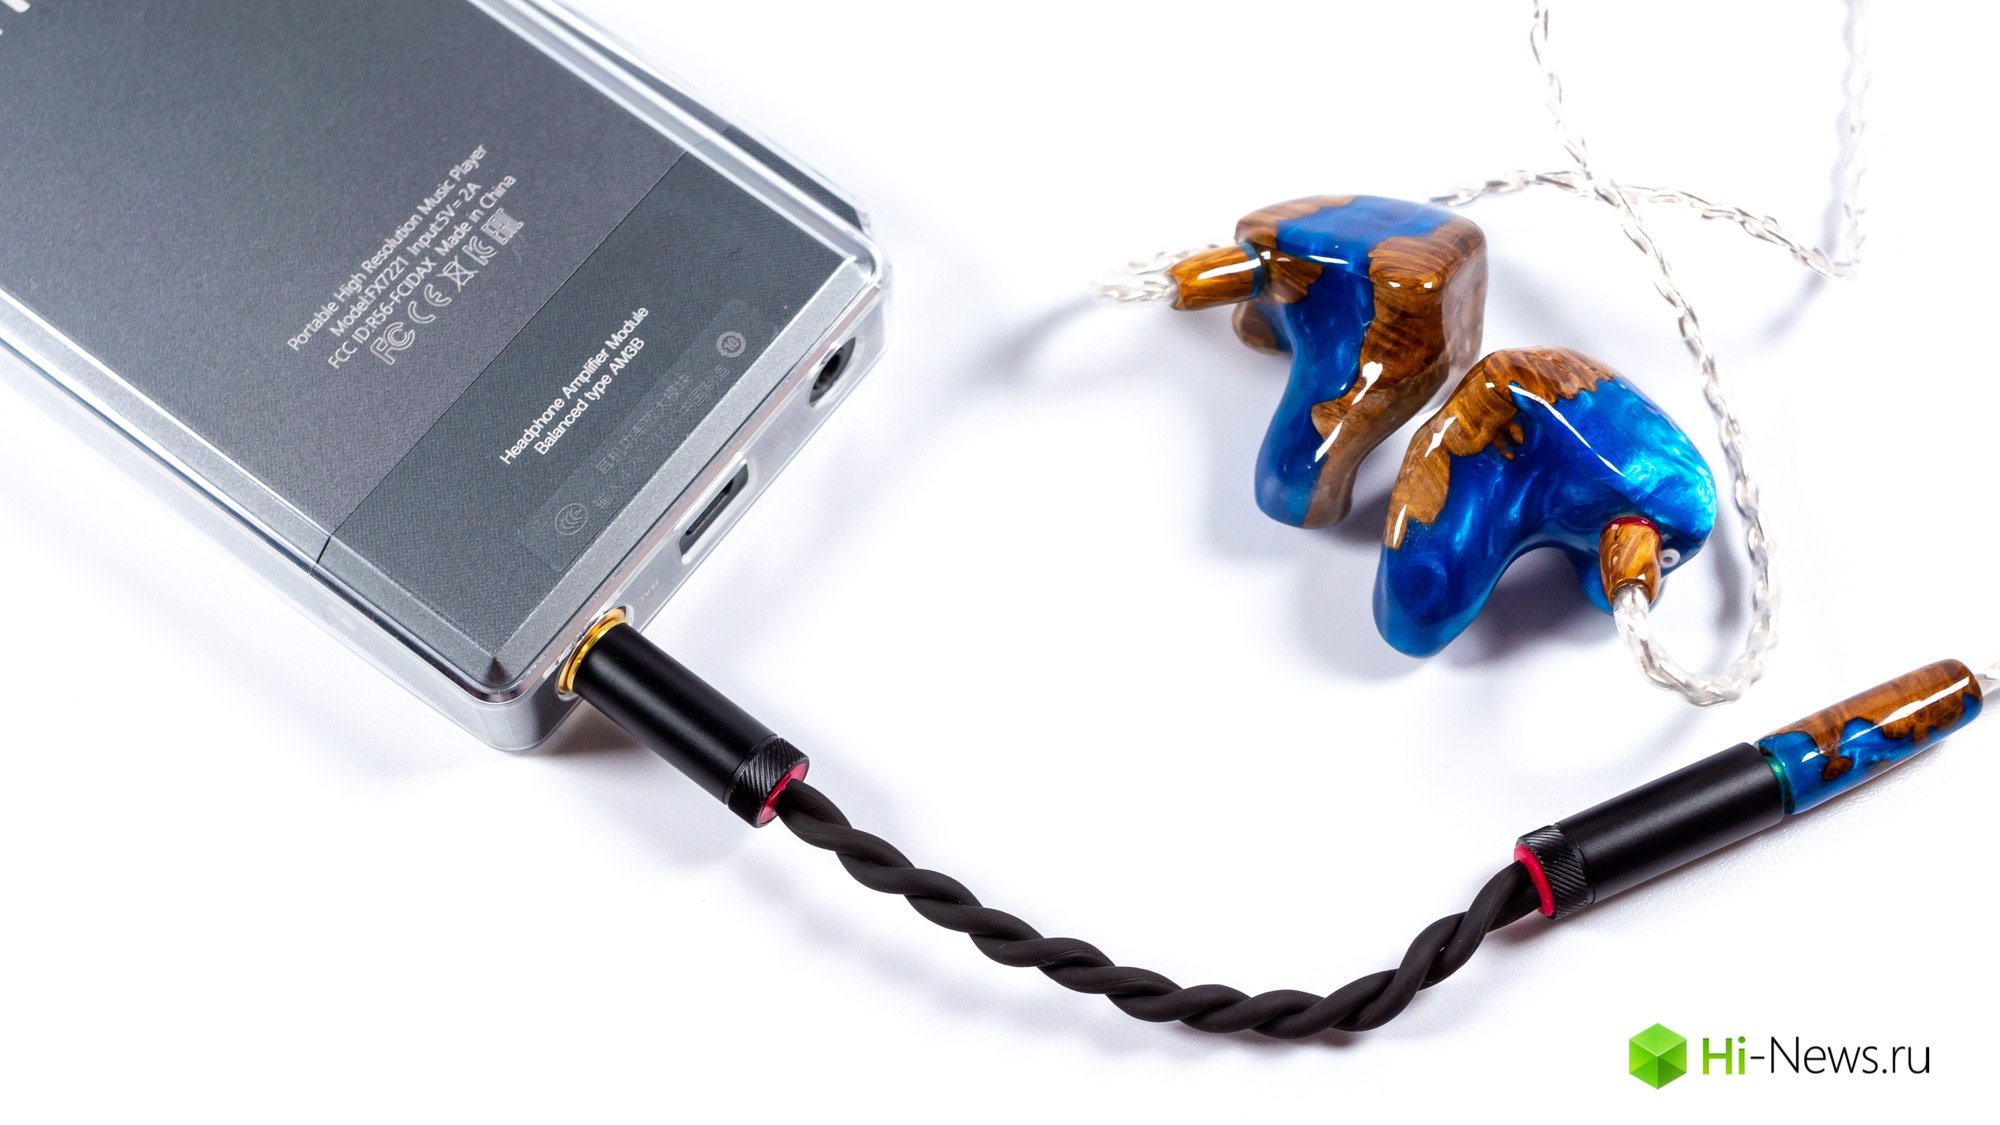 An overview of the amplification module AM4B FiiO and FiiO adapter BL44